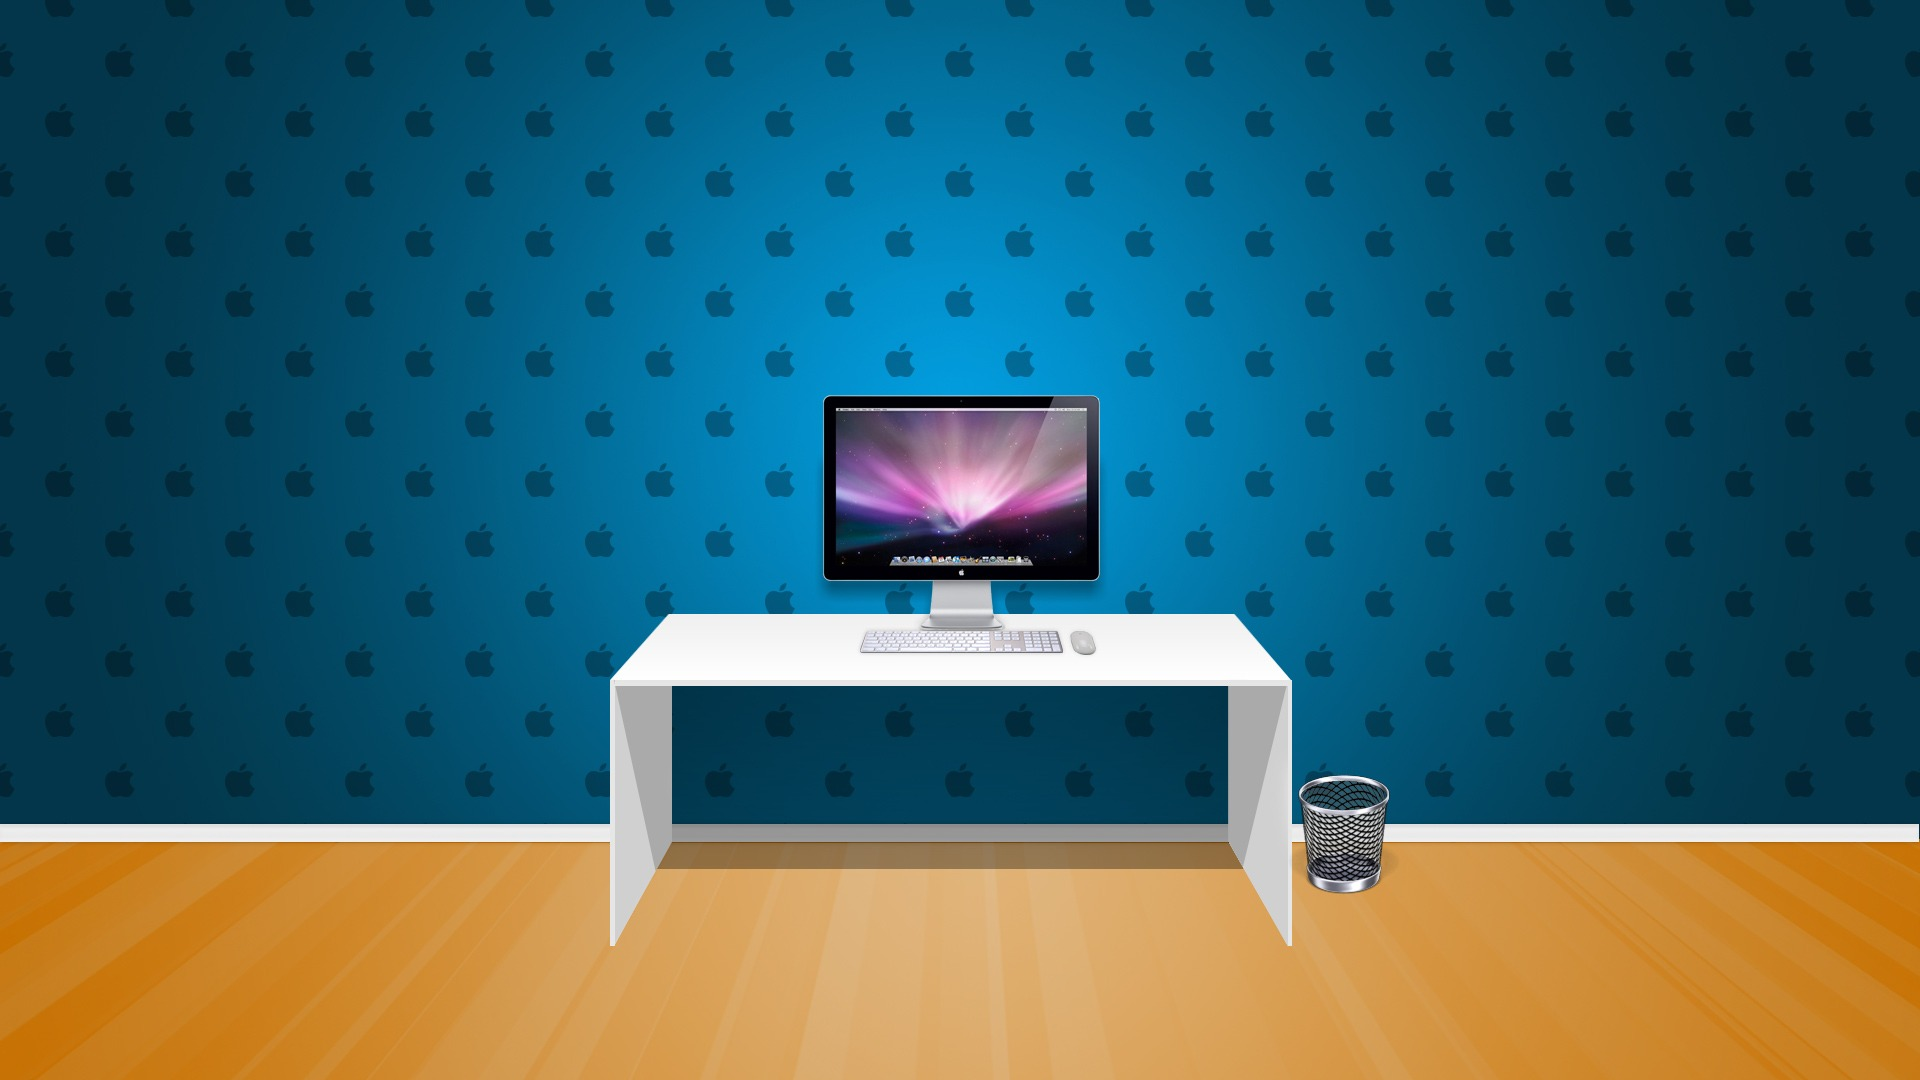 100+ computer desk wallpaper the diy hunter the diy hunter u.